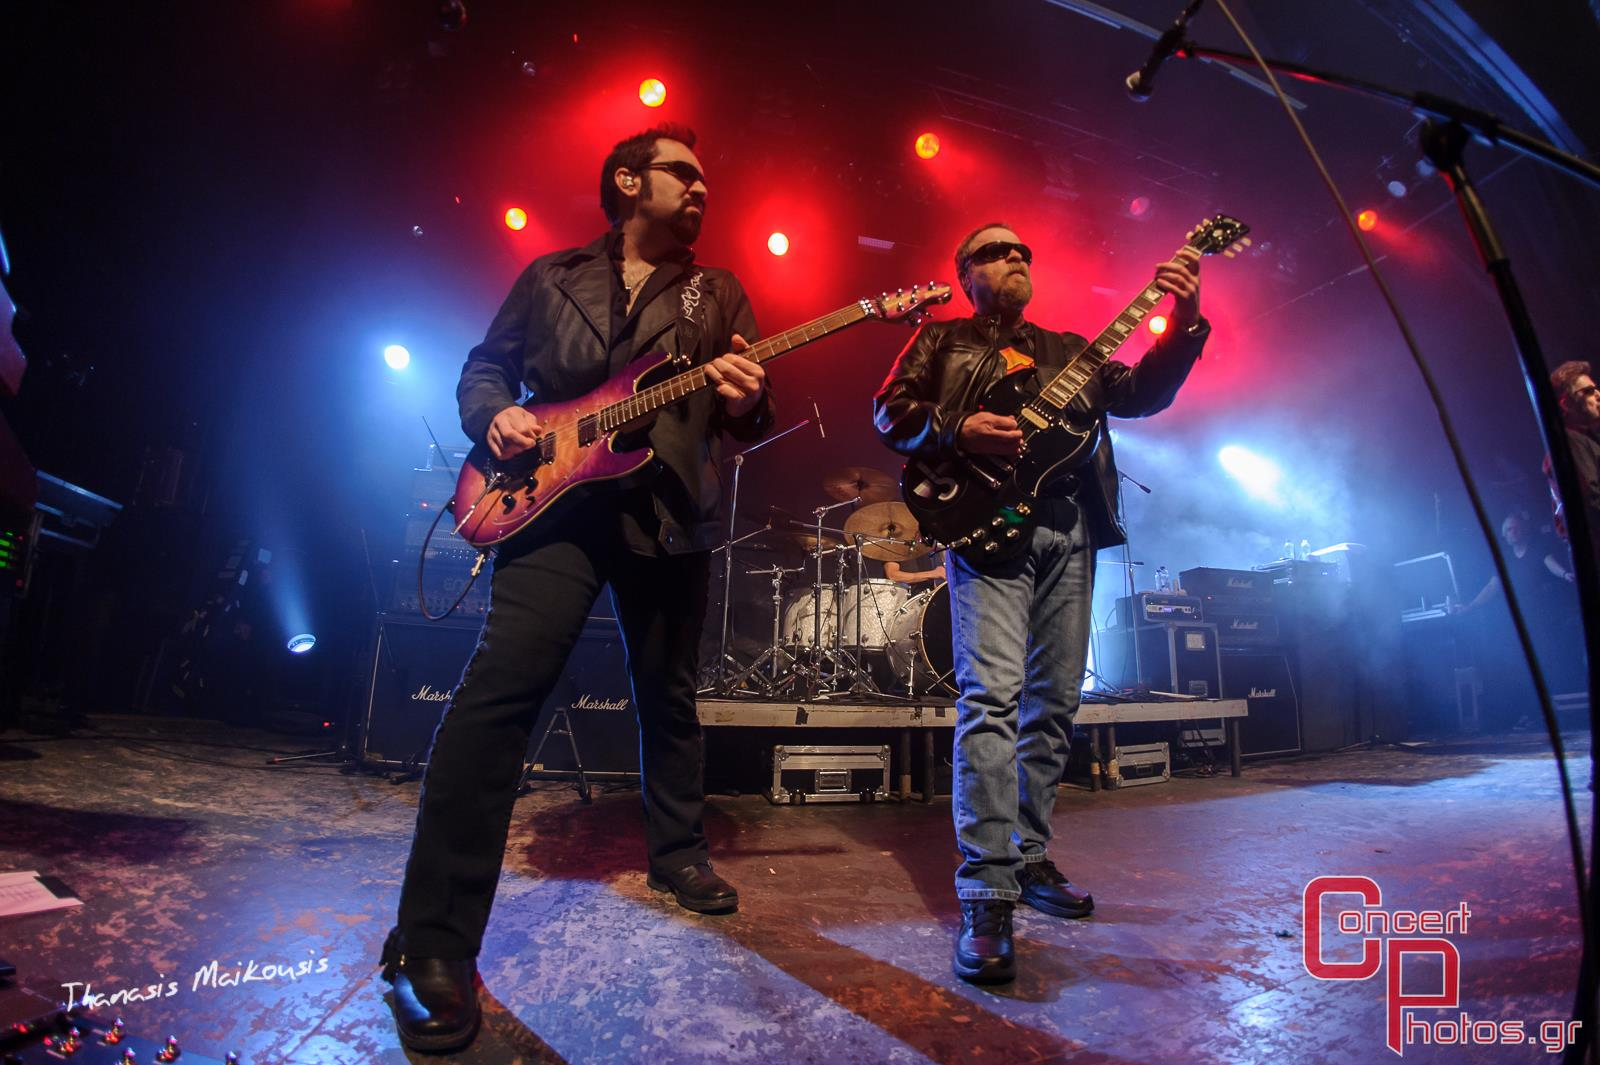 Blue Oyster Cult & Big Nose Attack-Blue Oyster Cult - Big Nose Attack photographer:  - ConcertPhotos-3161